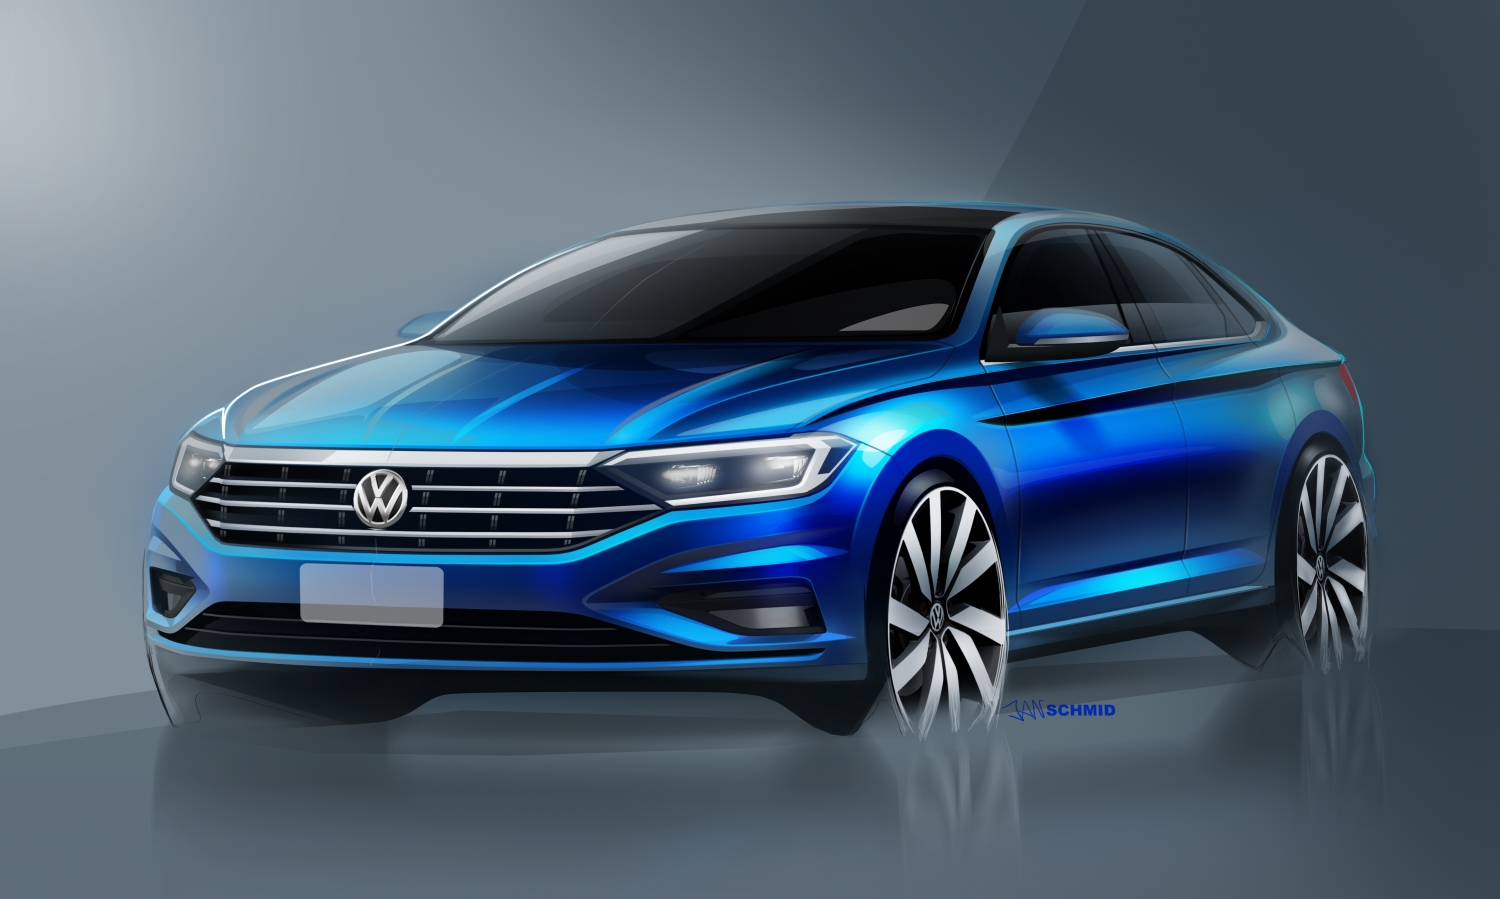 2019_vw-Jetta_sketch